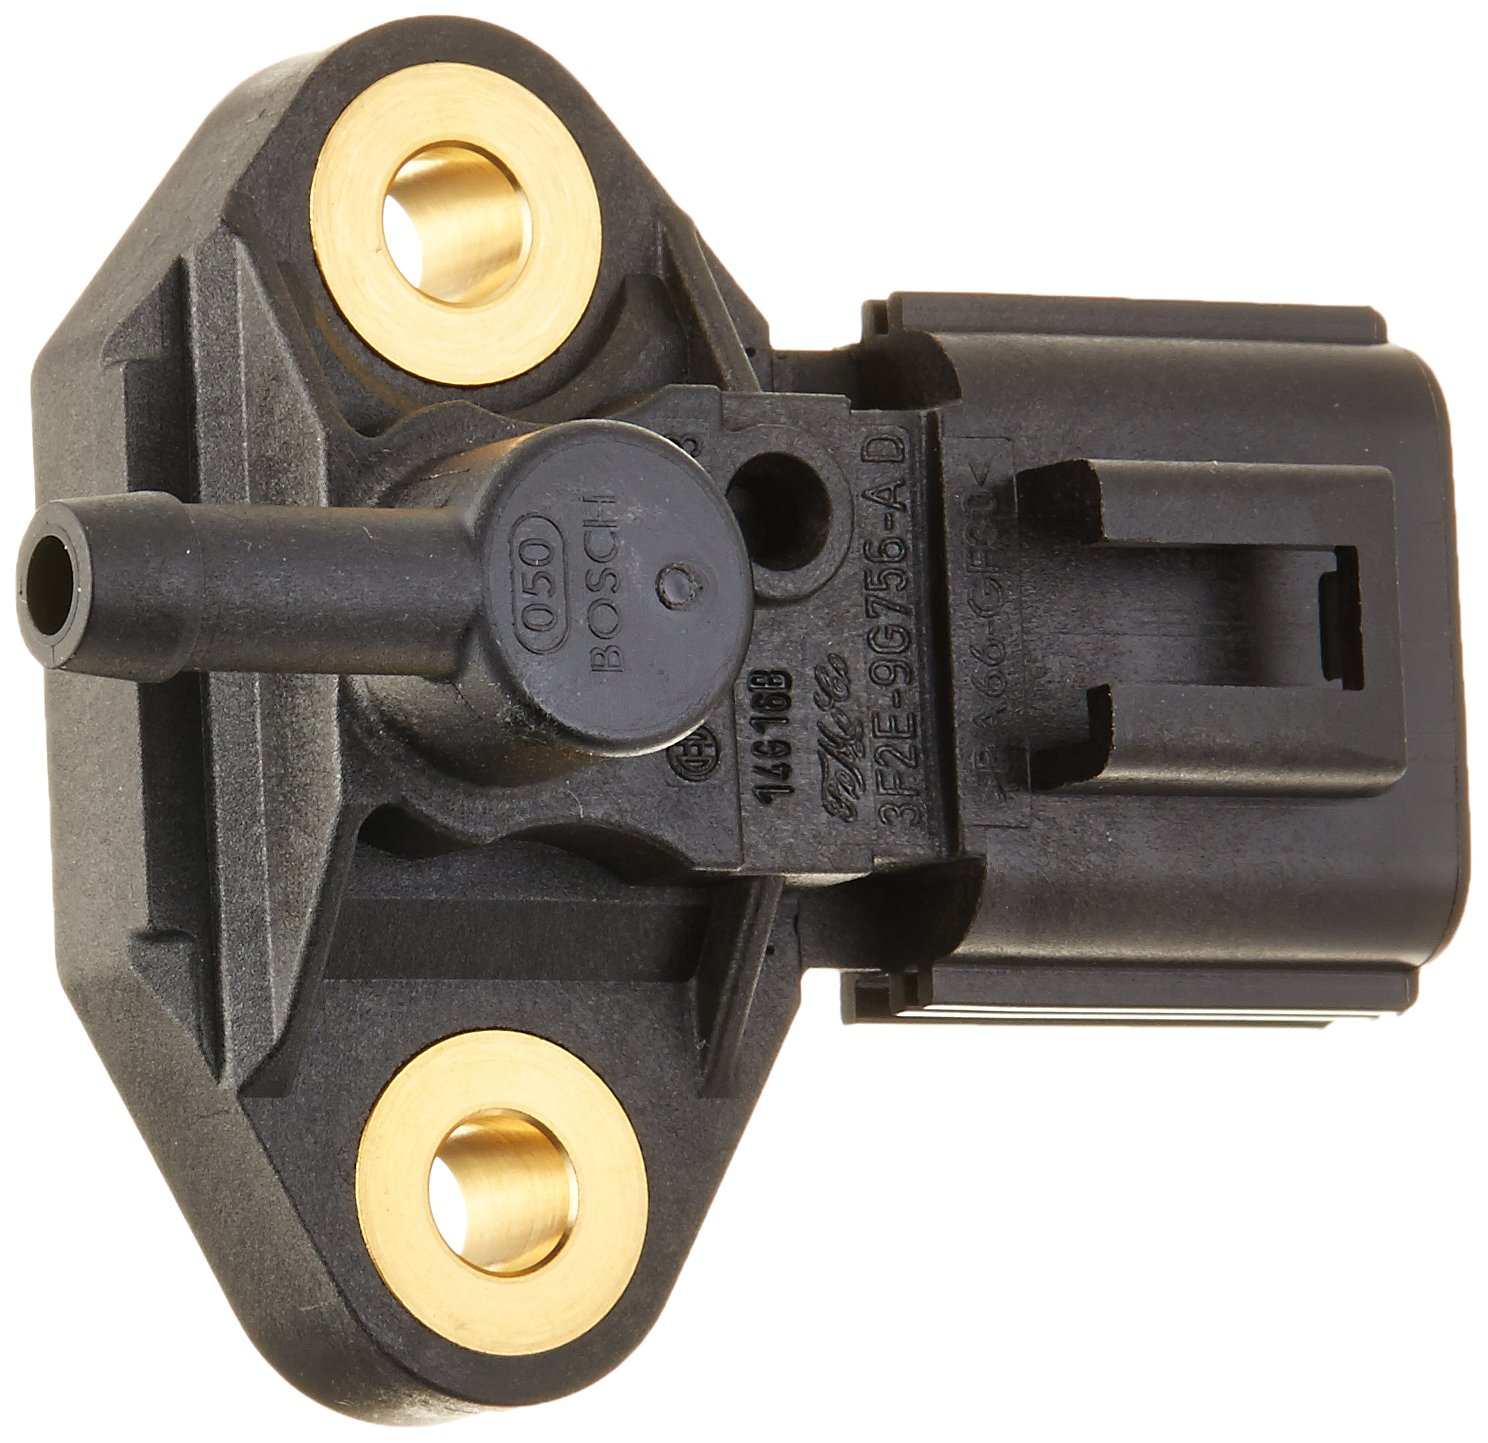 Motorcraft Cm5229 Fuel Injection Pressure Sensor Automotive 2003 Mustang Filter Location